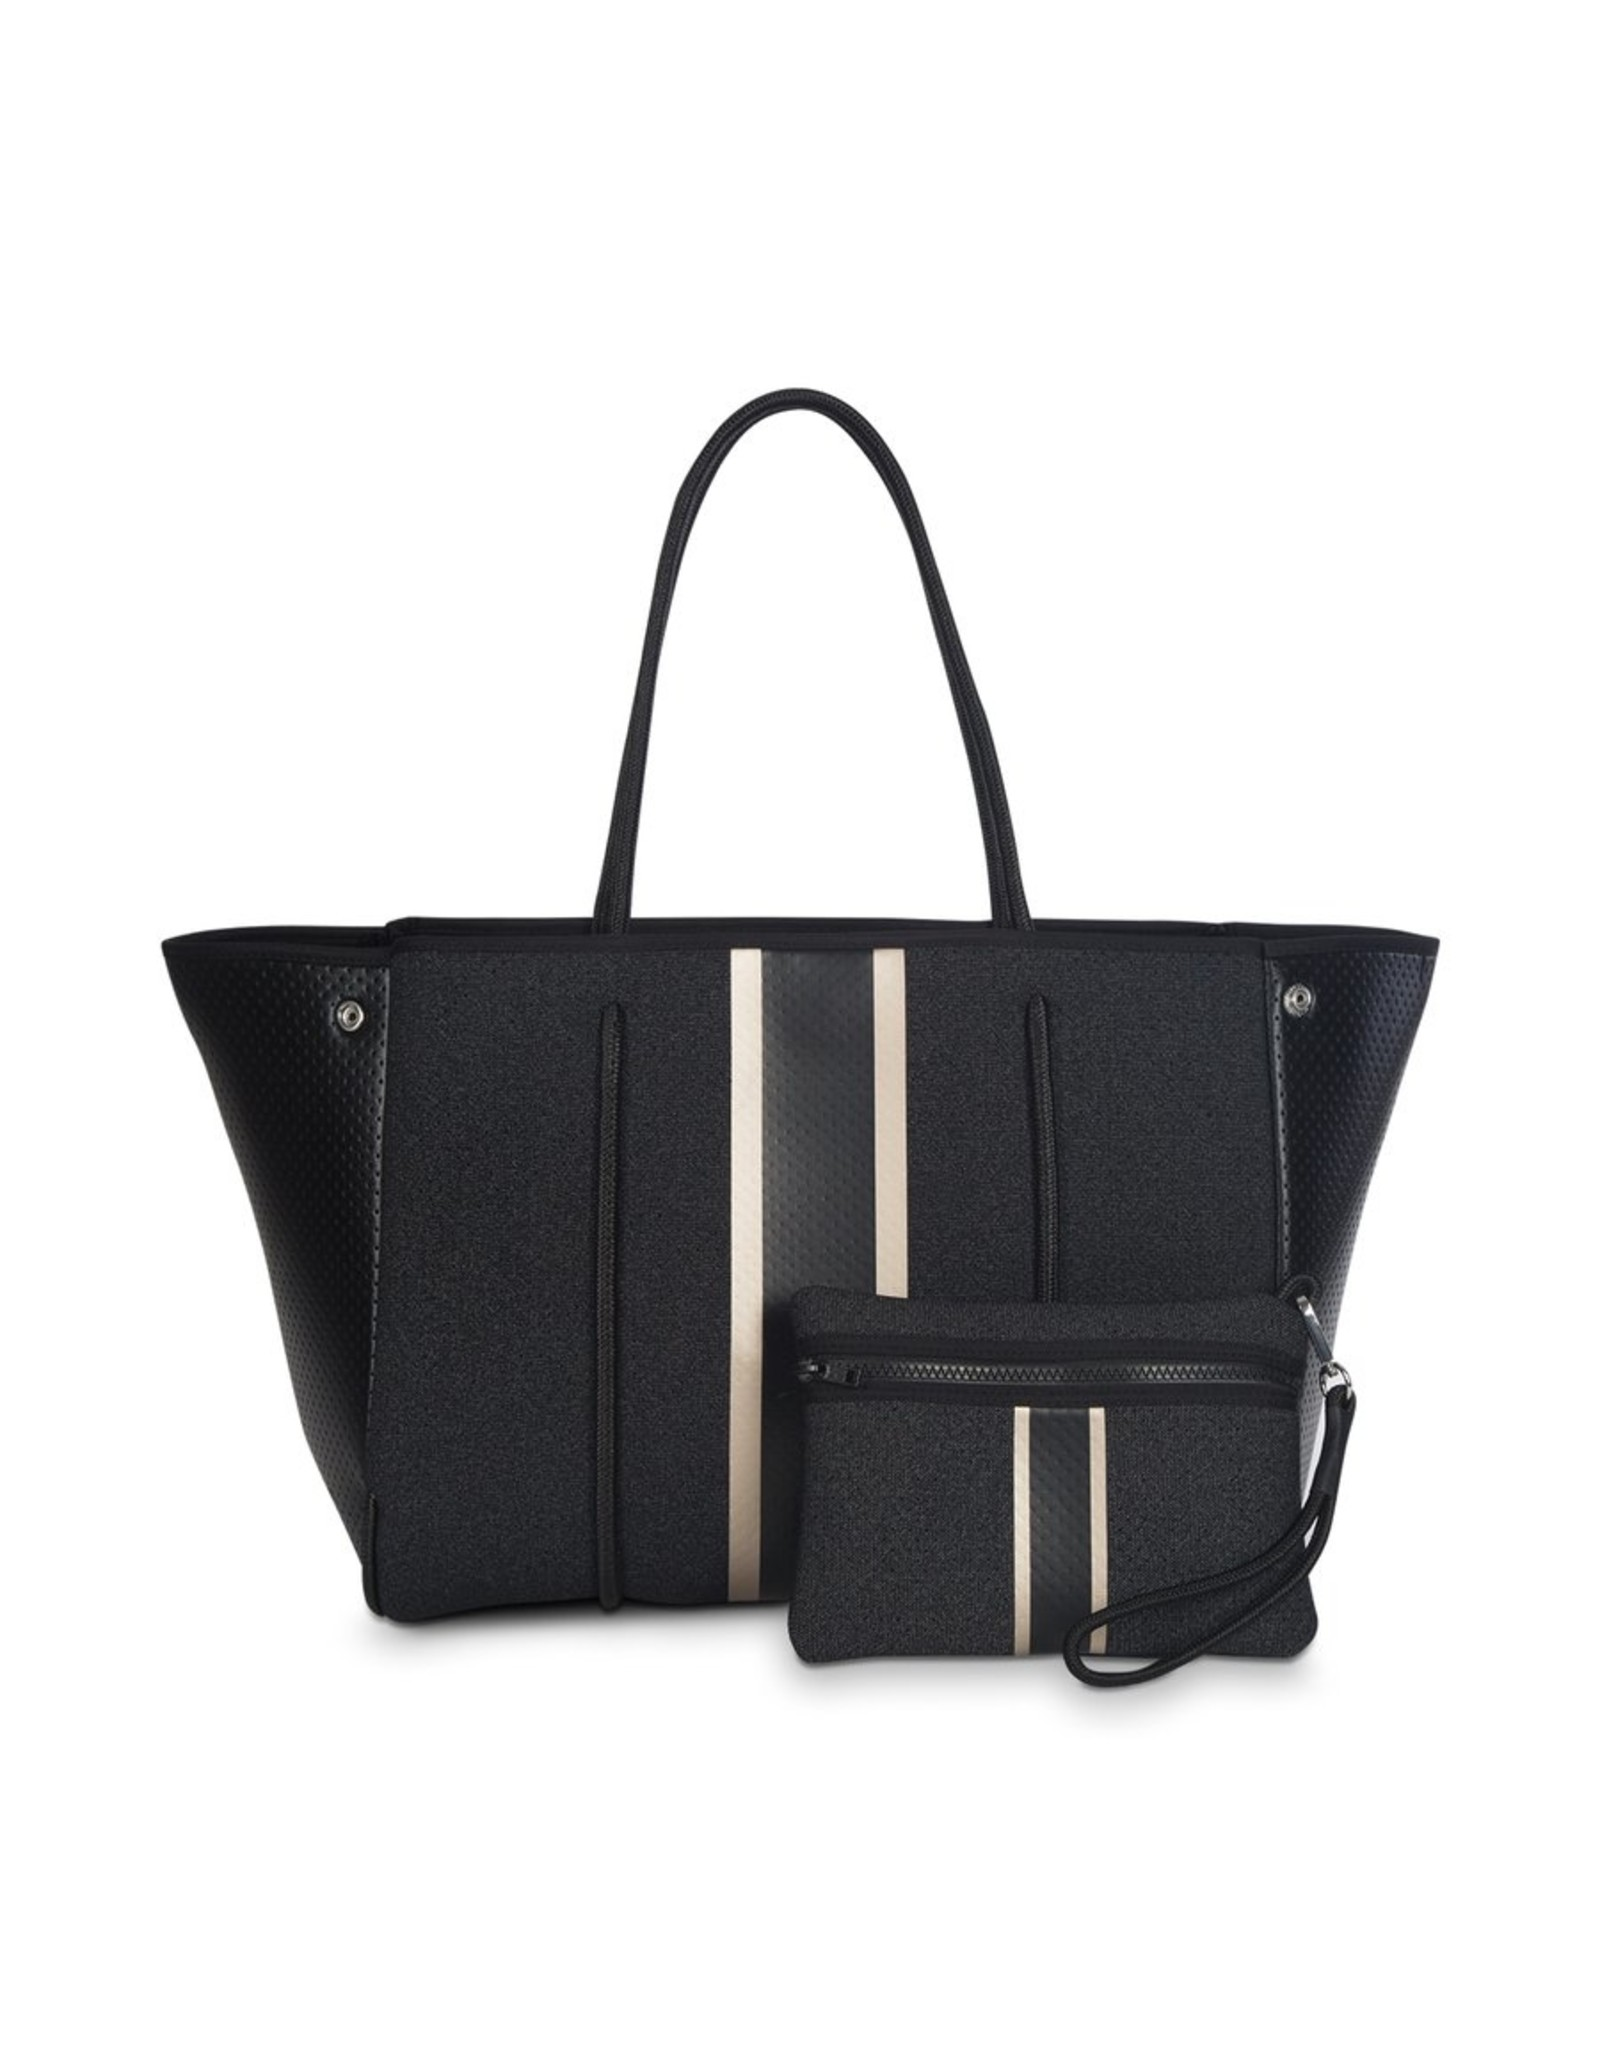 haute shore Black tote greyson grand